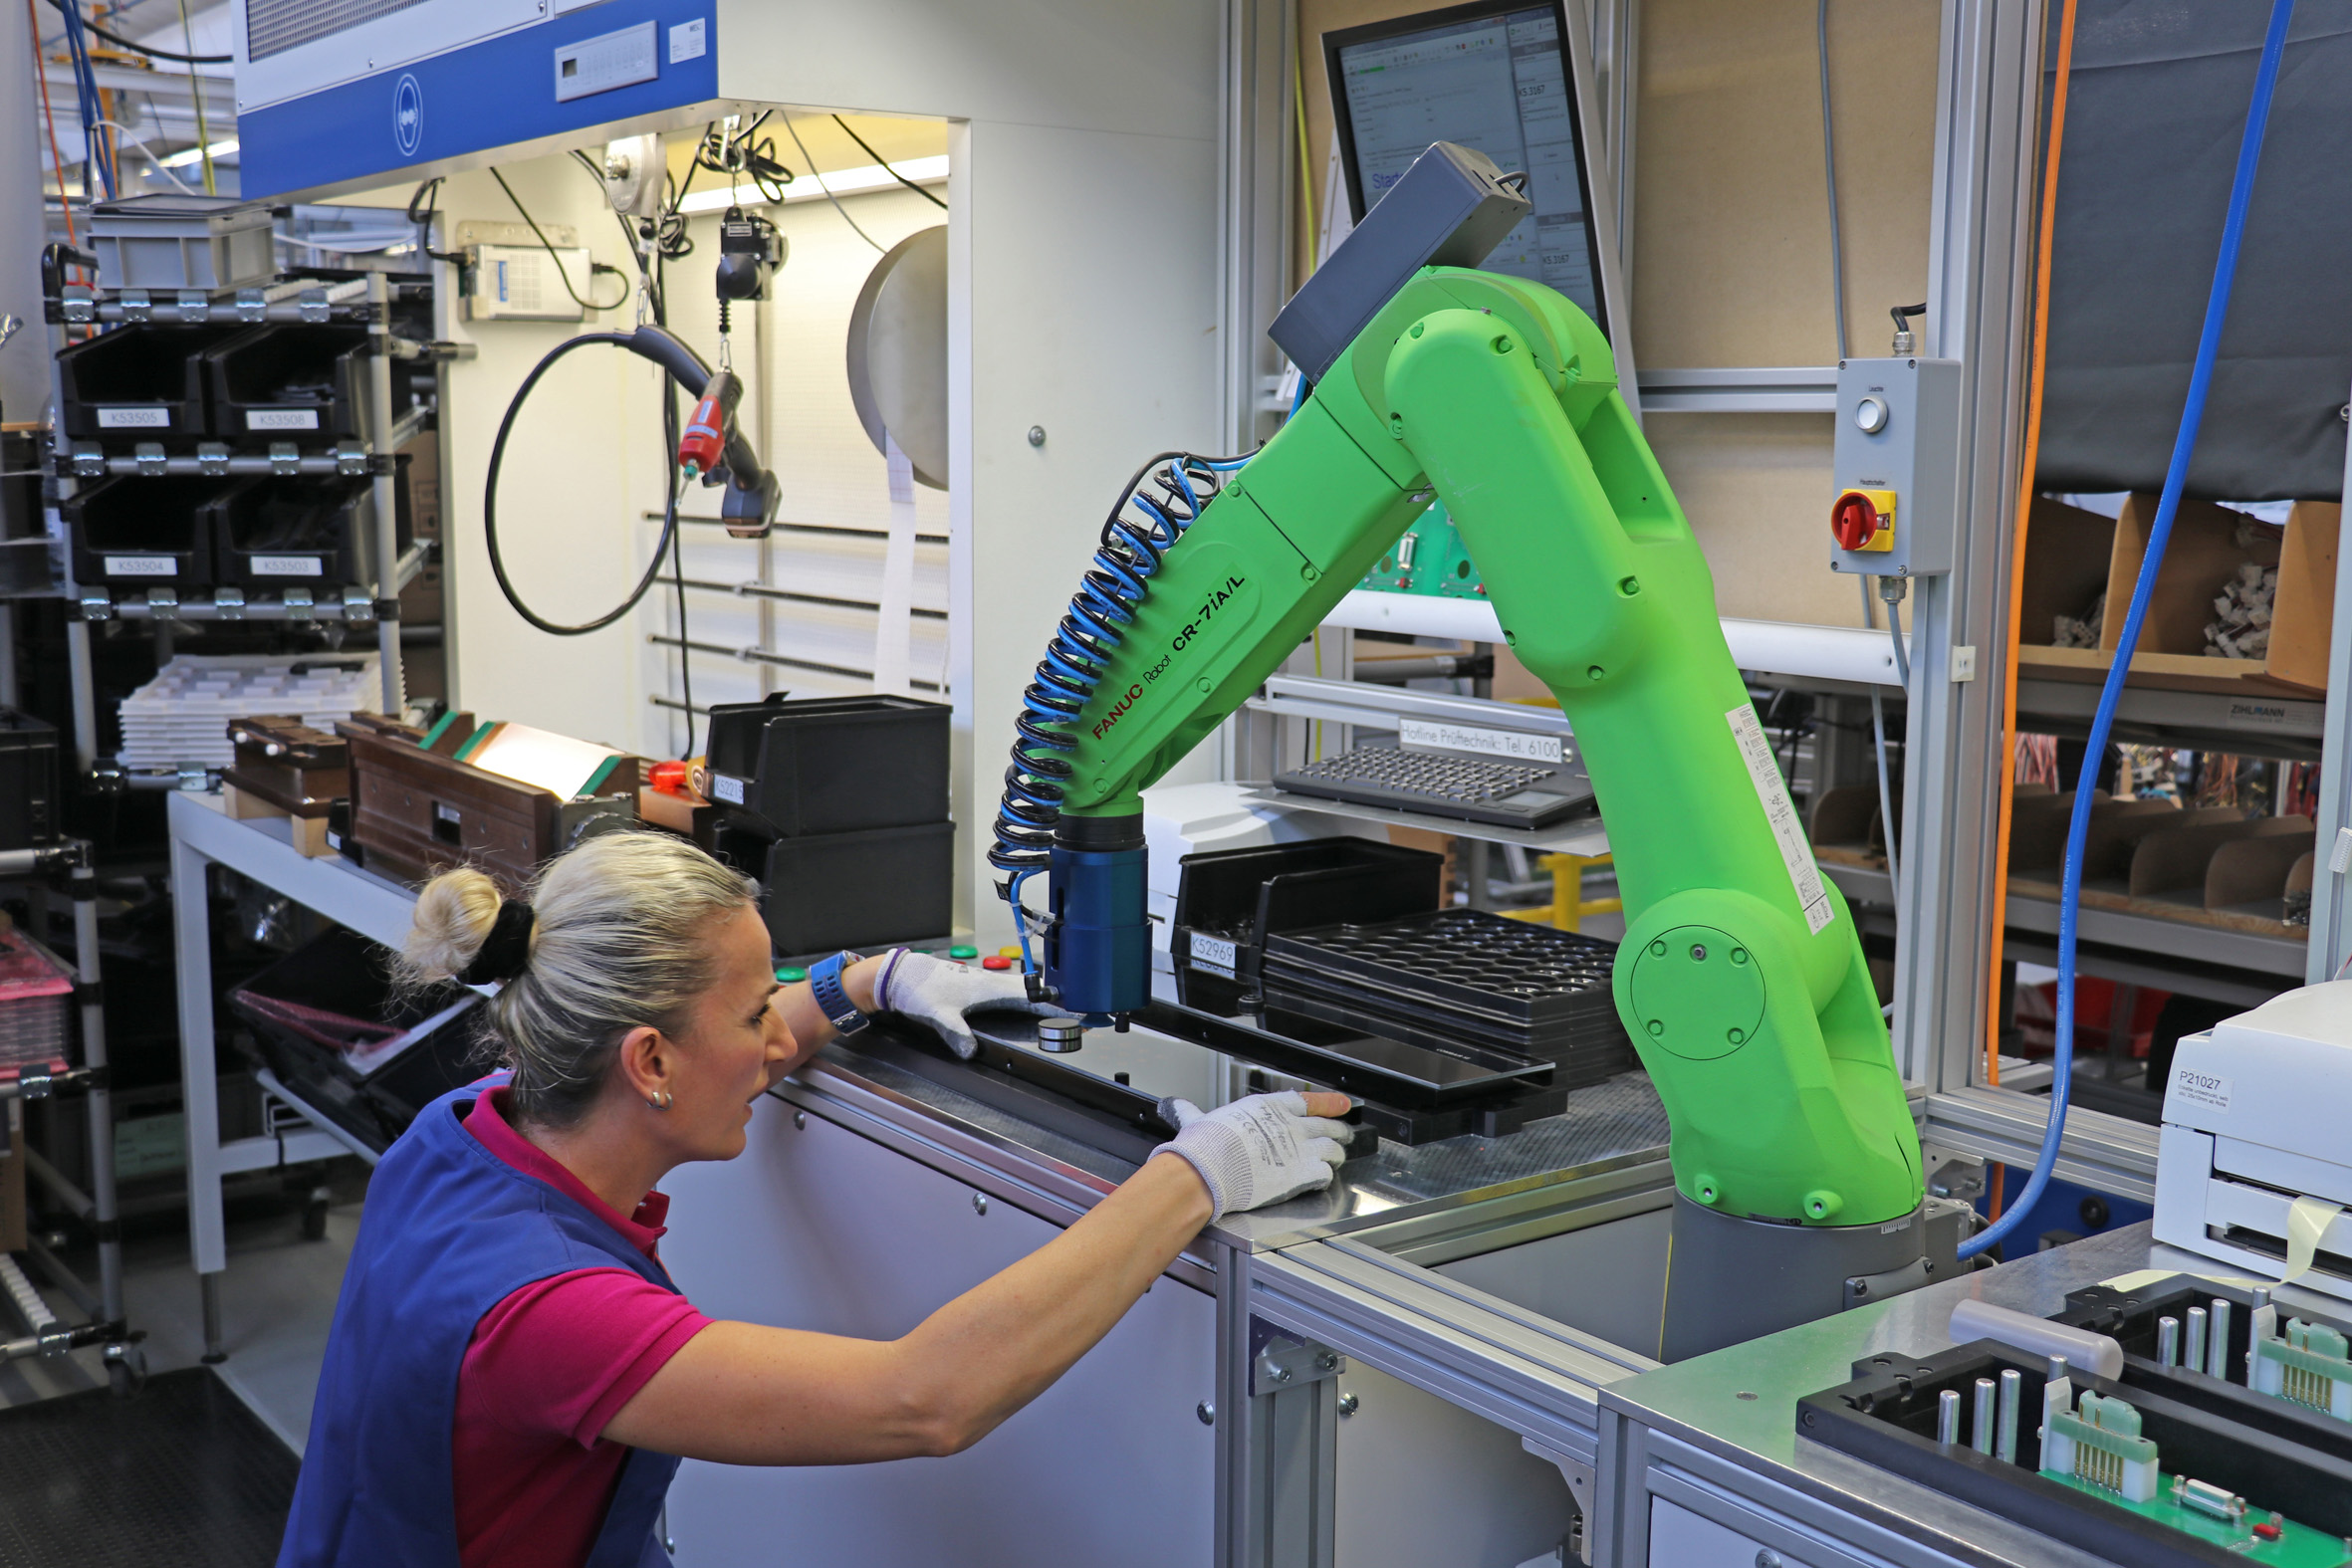 Robot industriali e cobot, trend europeo in ascesa